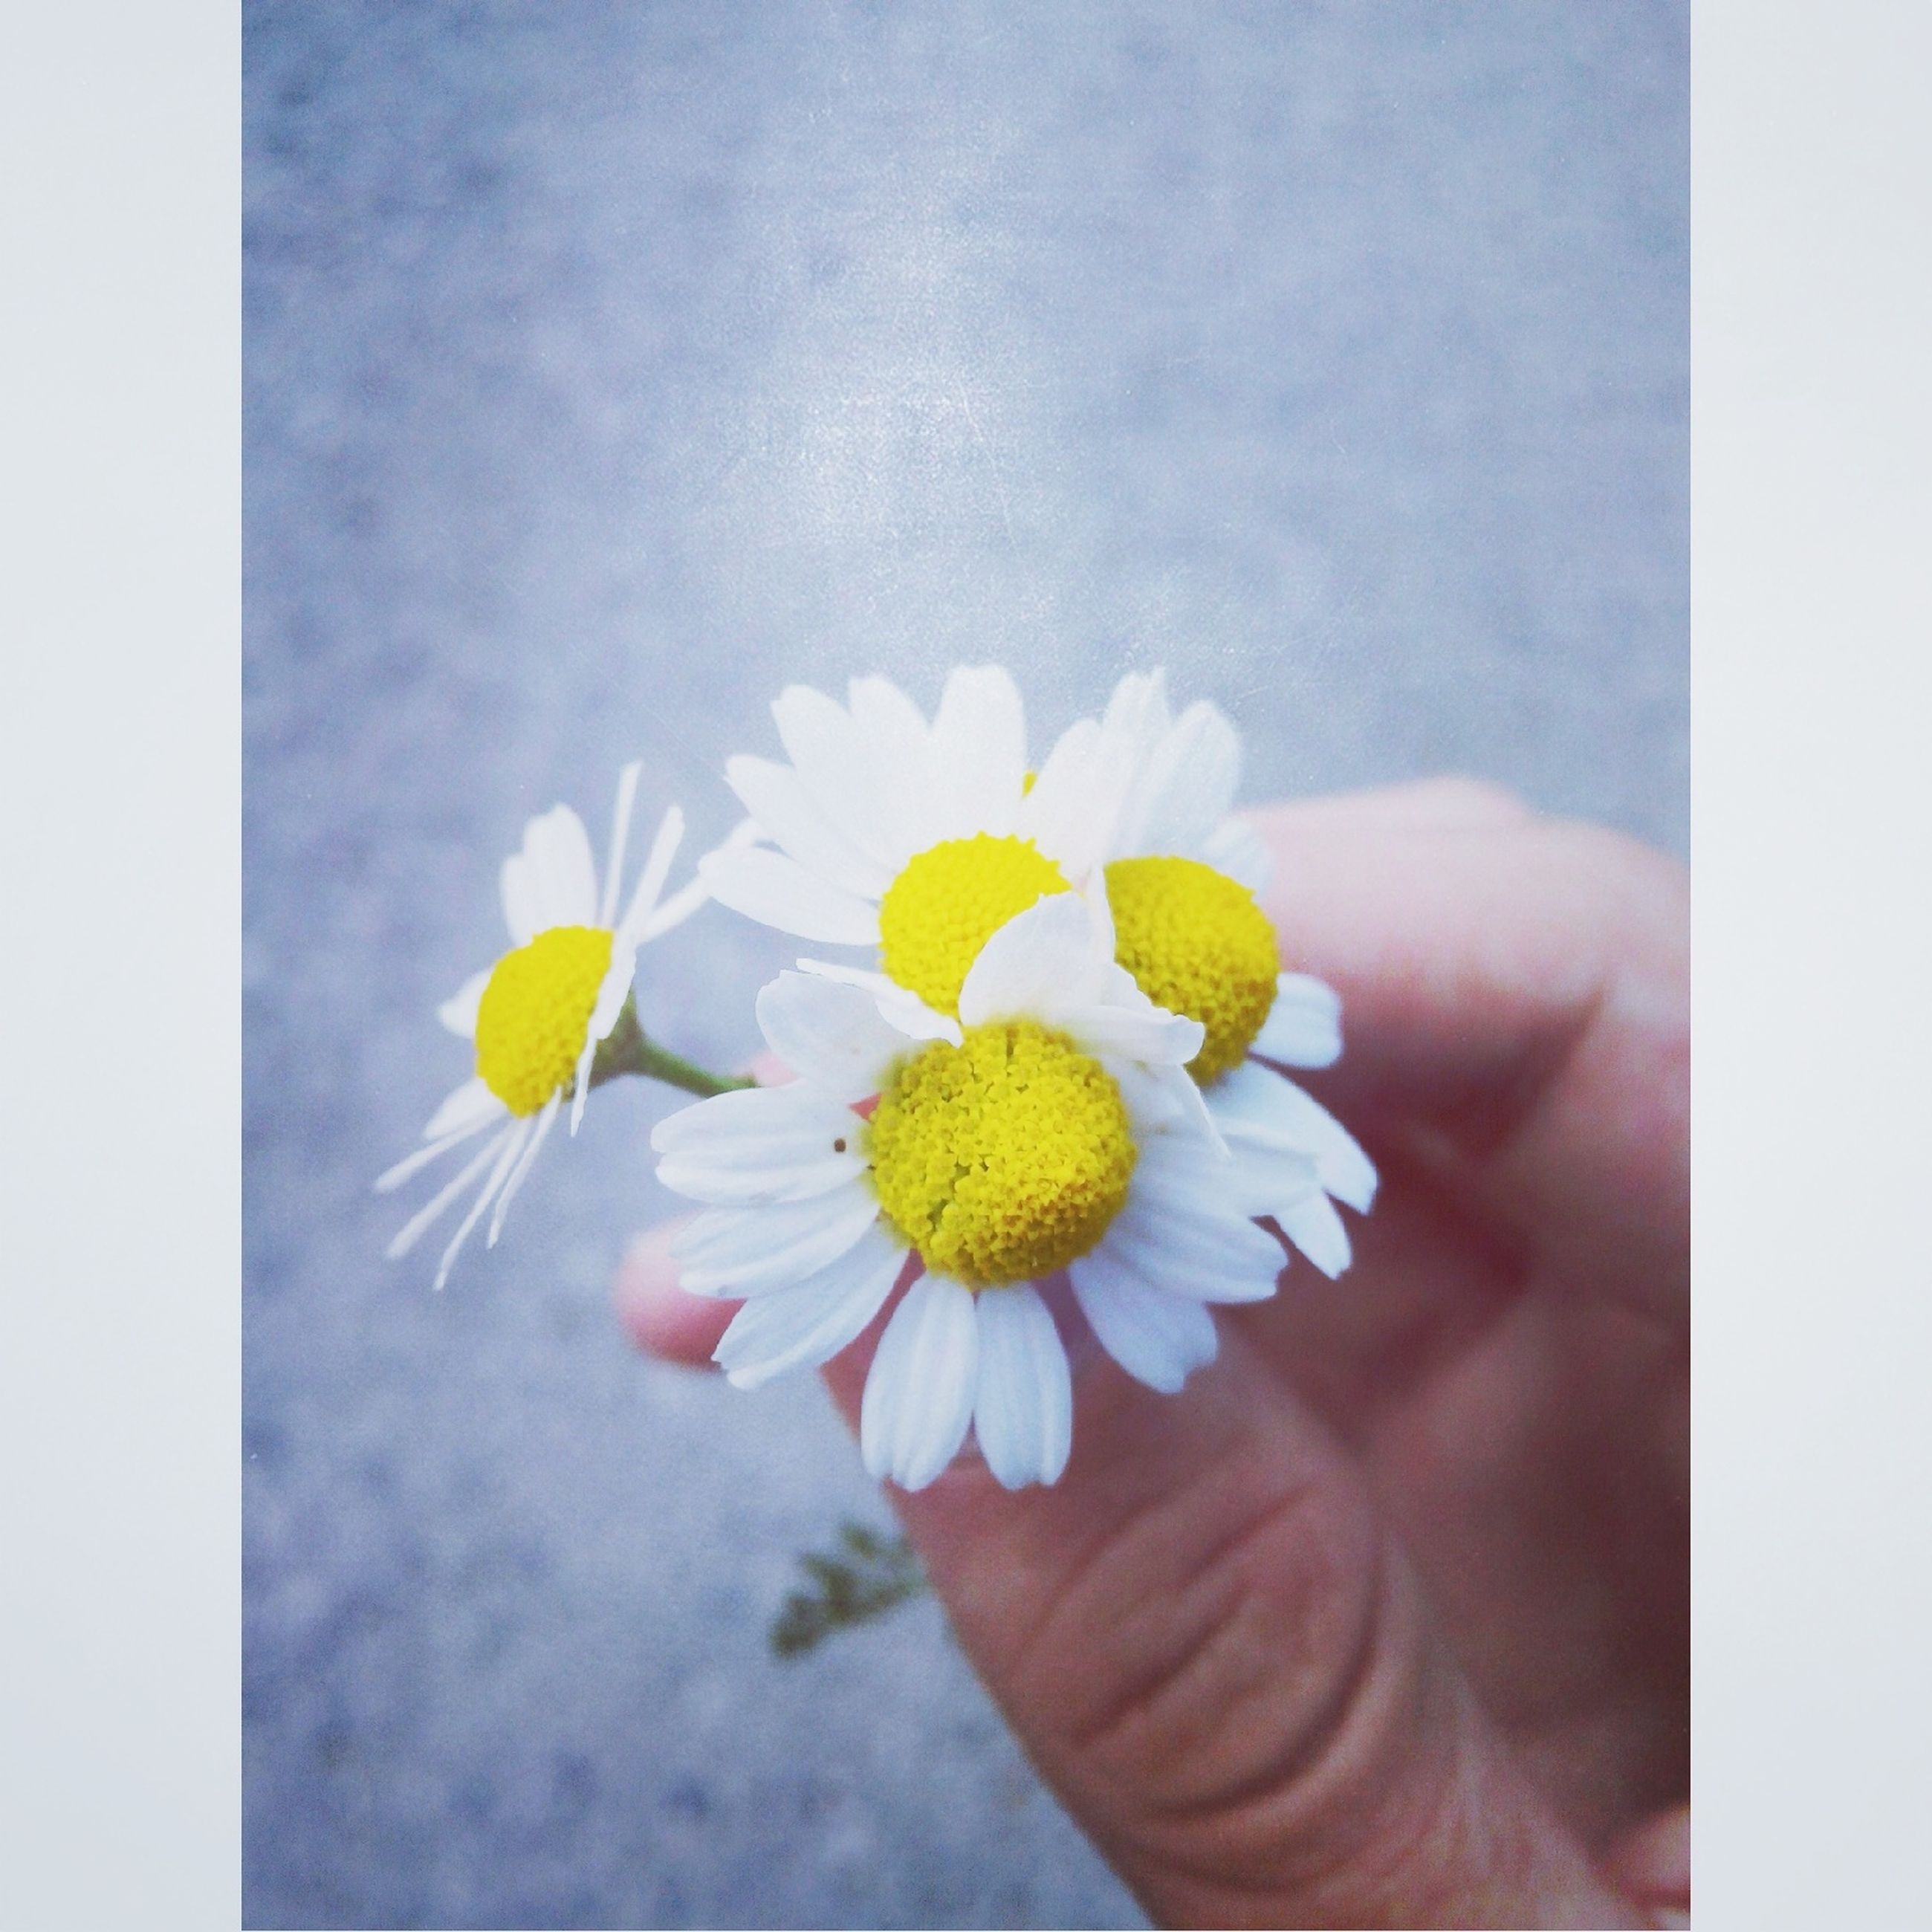 flower, petal, person, fragility, freshness, flower head, holding, yellow, transfer print, white color, part of, auto post production filter, close-up, daisy, cropped, pollen, single flower